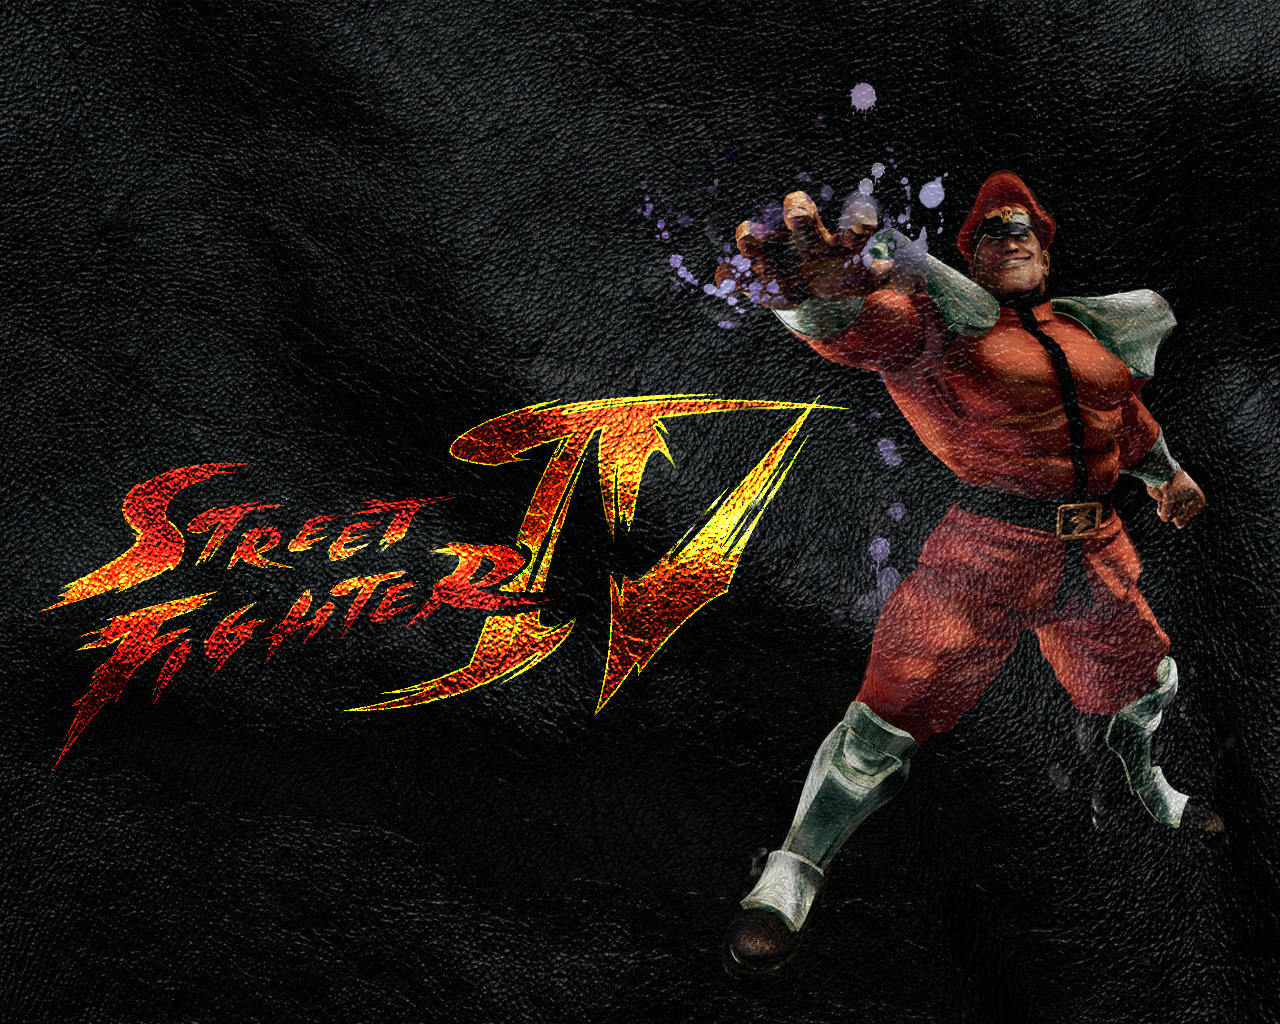 Street Fighter IV M. Bison by Sandaime-Kiichi on DeviantArt